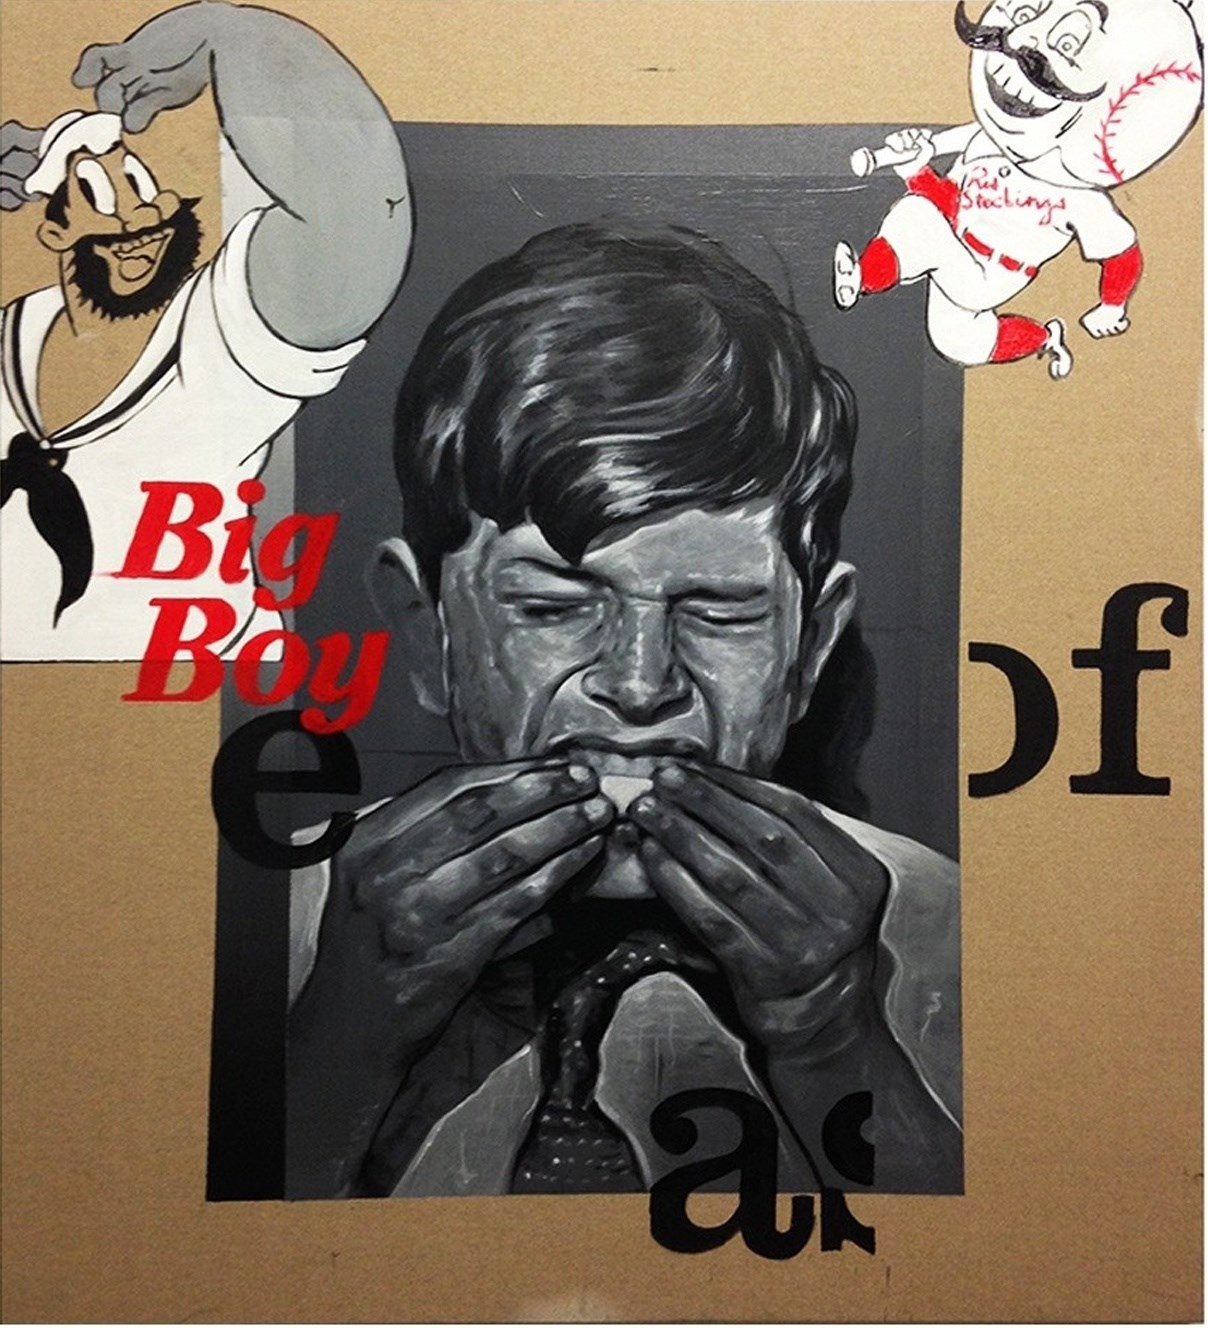 Big Boy, Pintura Acrílico Abstracto original por David Rosado